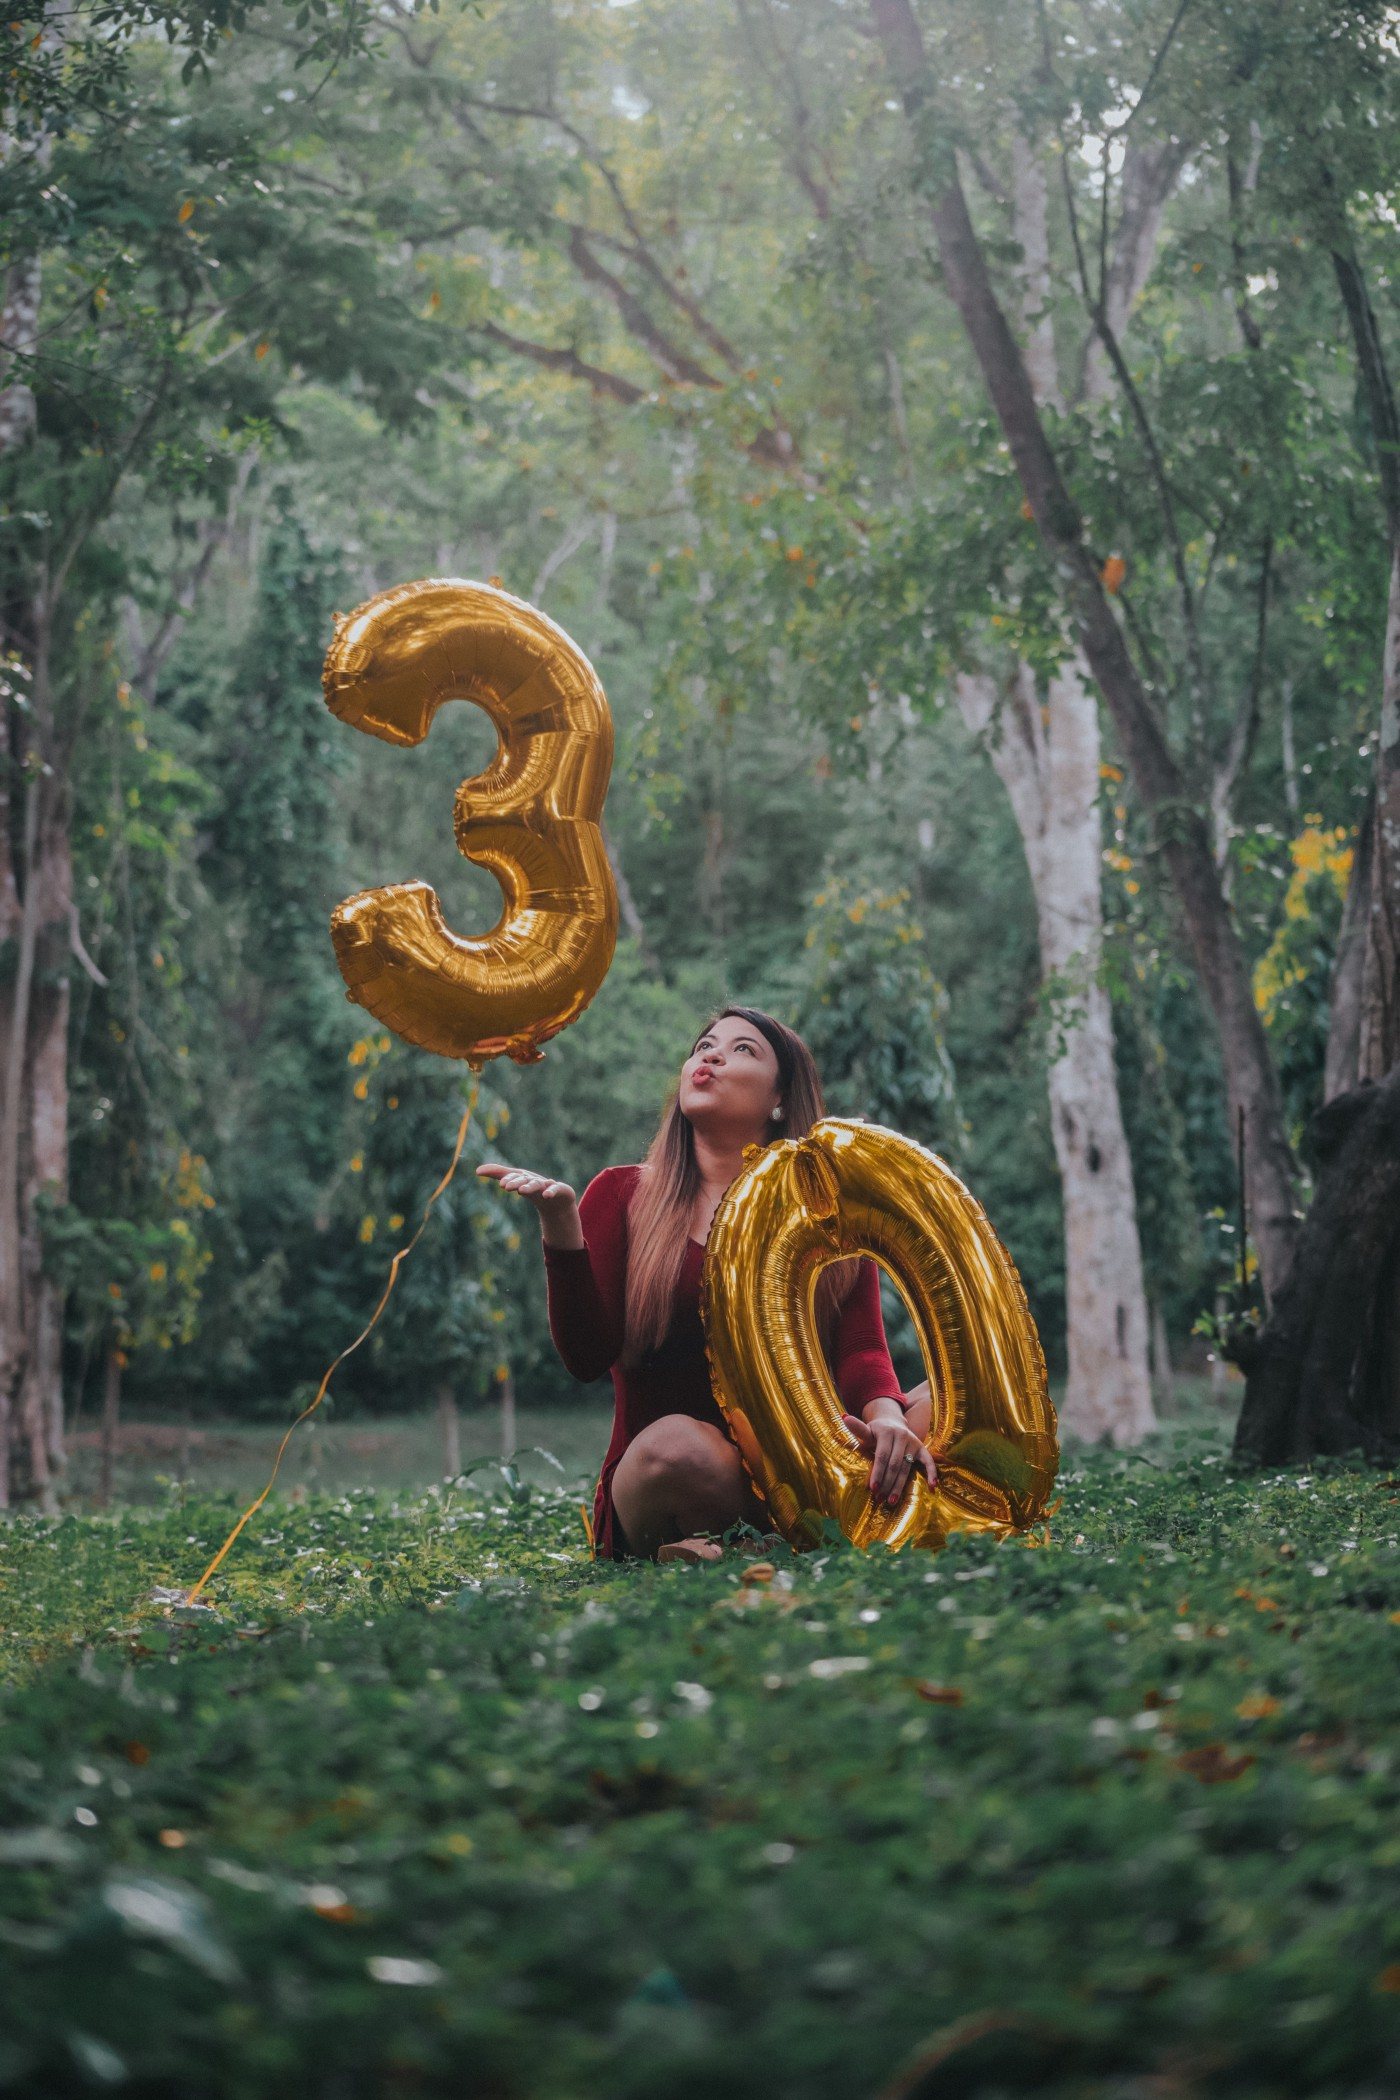 Female in red dress in a forested area with two golden balloons, one 3 and one 0. She's airkissing the 3.